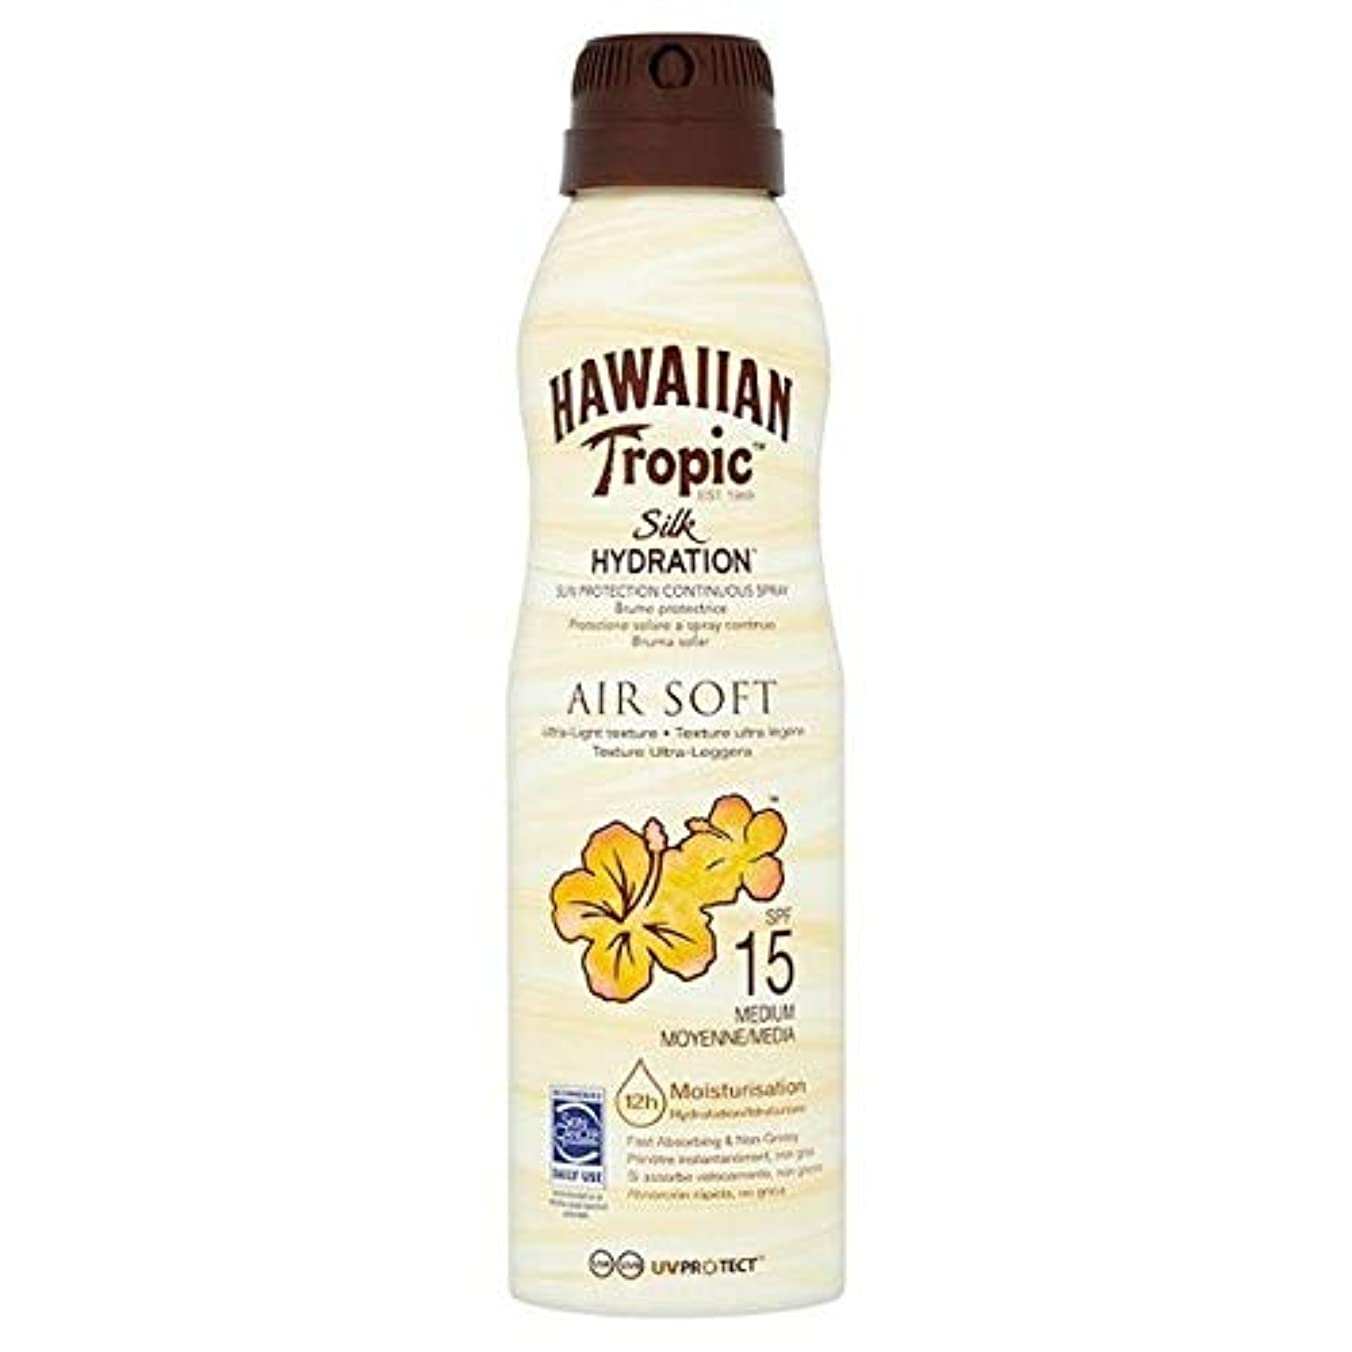 [Hawaiian Tropic ] H /向性絹水和エアガン連続スプレーSpf15の177ミリリットル - H/Tropic Silk Hydration Airsoft Continuous Spray SPF15...